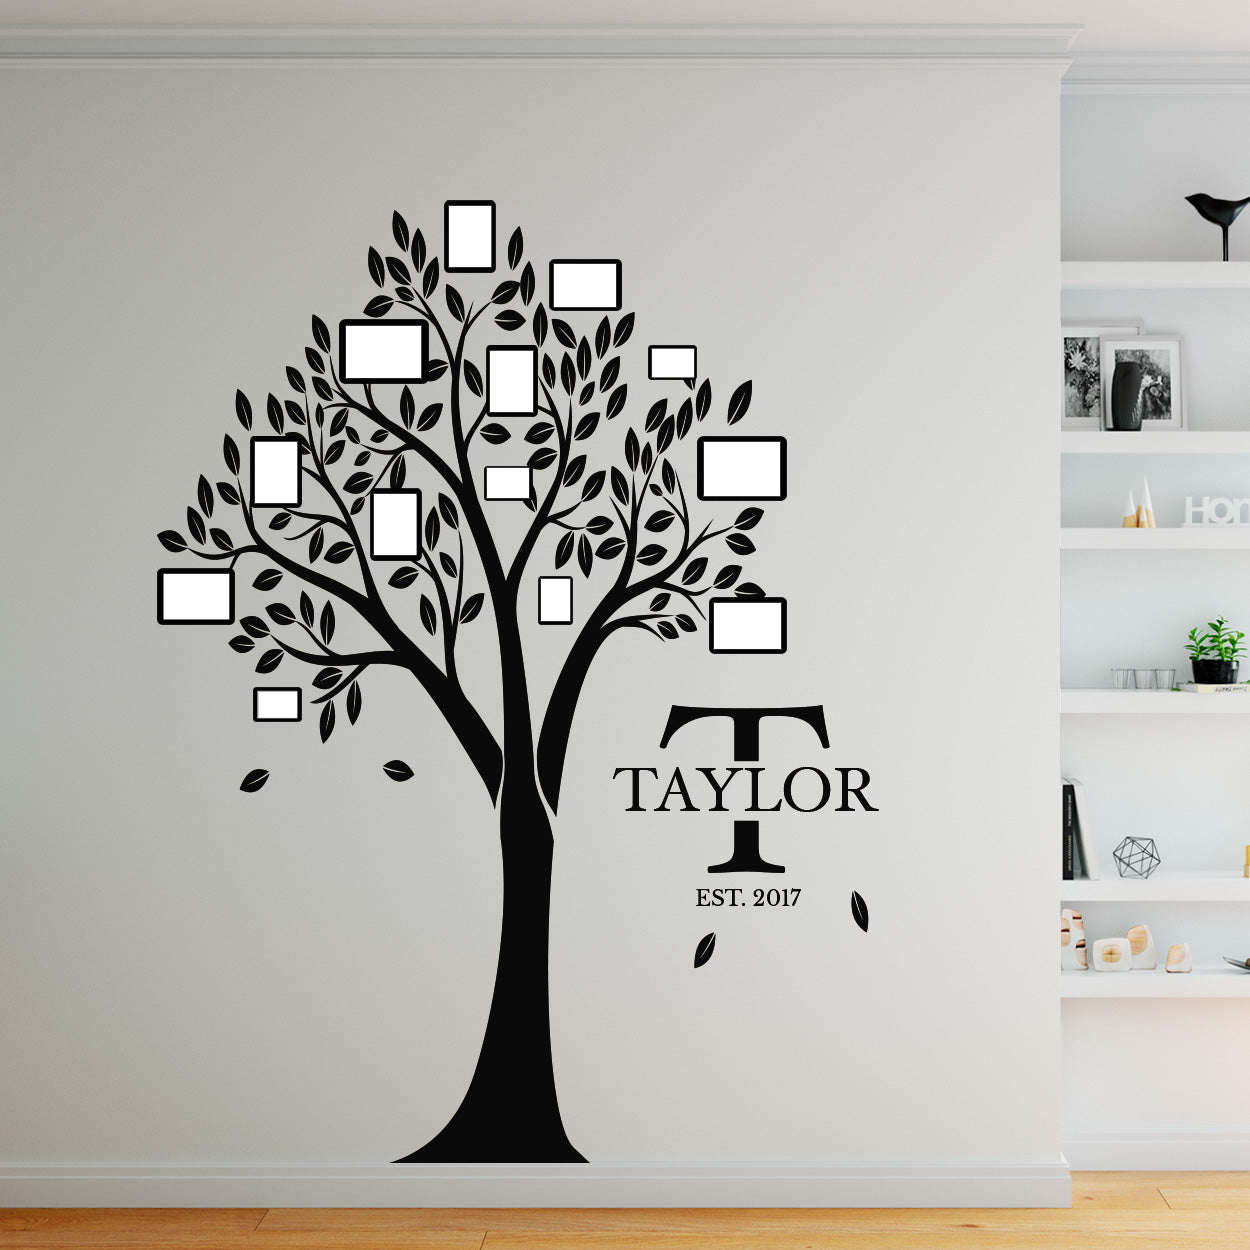 Family Trees - 4 ft. x 6 ft. Vinyl Decal Tree with Last Name